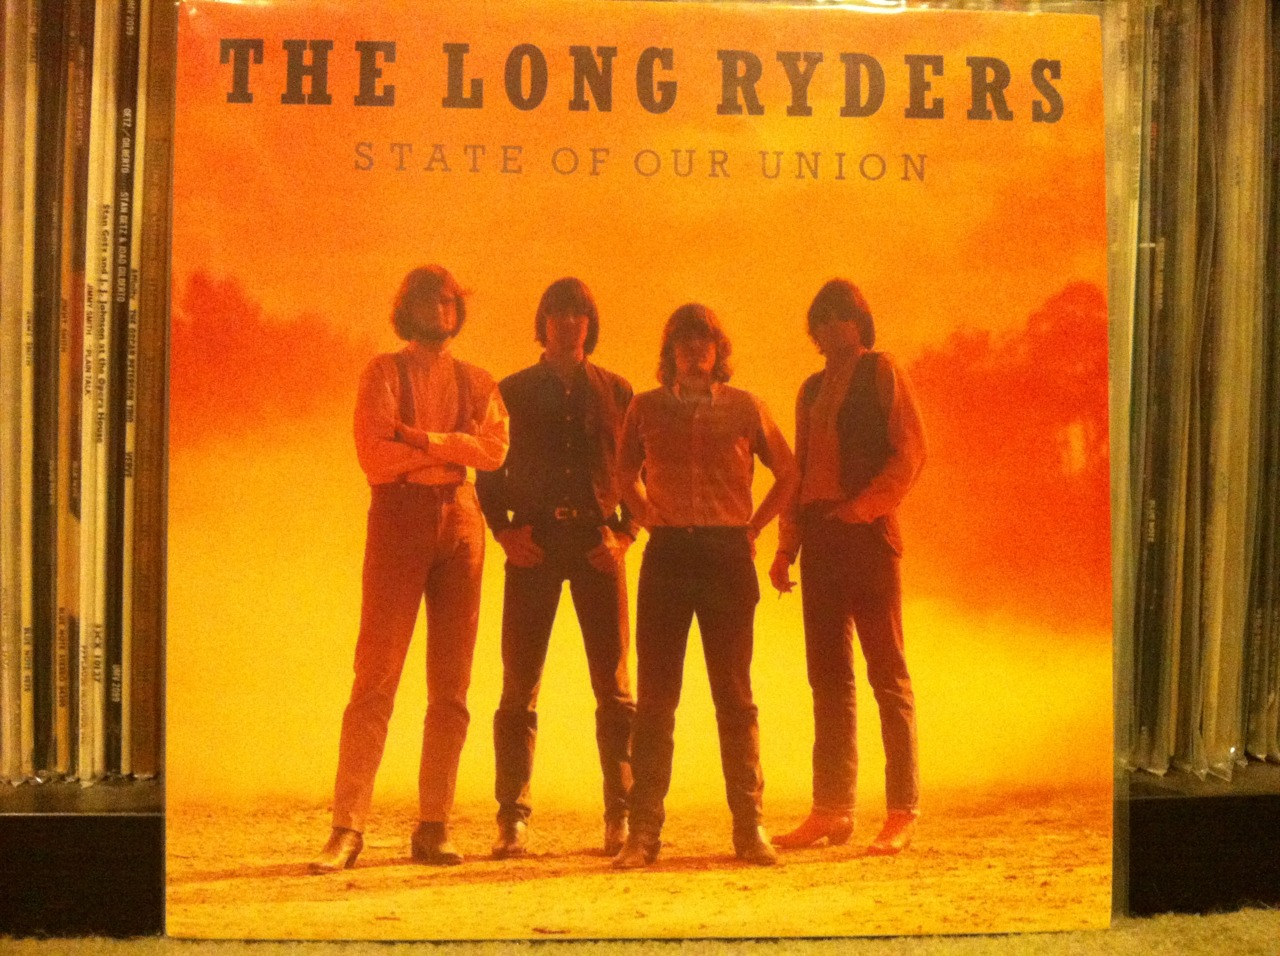 "The State Of Our Union!    ""I thought I saw some diplomat hawking secret plans in the park.   I thought I saw my president walking through Harlem late after dark.""   Those first lines of this record's opener - Looking For Lewis And Clark - suggest you're in for a politically charged wild ride. Turns out it's a well-written, tuneful, fun one at that. I love this record for so many reasons and one of them is that The Long Ryders use this record to prove the supposed rock 'n' roll dust bowl of the 1980s is a myth.   This record is an appropriately arrogant blend of country rock love of Gram Parsons, plugged into some Byrdsian jangle guitar, a strong pop sensibility and the spirit of Woody Guthrie. And it all happened in 1985.   Sid Griffin (g), Stephen McCarthy (g), Greg Sowders (d), and Tom Stevens (b) came together again in 1985 to create this long-player filled with addictive Americana (no wonder it was so popular in England!). It's their second record together with this line-up. The first being 1984's Native Sons (which may have even more going for it). The same line-up minus bassist Tom Stevens put out a great EP in 1983 called 10-5-60.   State Of Our Union is packed to the gills with some predictable stuff like weaving, bashing, jangly guitars. But, it's just as heavy into harmonica, autoharp, banjo, and lap steel. Oh, and drums that never miss a beat and keyboards that don't stink.   Funny thing is, State Of Our Union seems as well suited to the have/have not times of today as it did in the mid 80s. Or, in the 1930s for that matter. I'm not saying the record is timeless but man is it close. There's no doubt the band didn't like trickle down economics or Ronald Reagan's view of America. But to say the record is singularly focused on politics underestimates this slab of fine wax. It's as easy to pump your fist in the air in support of the small man as it is to get lost in the scenery of riding the rails and filling up your coupe with gas from a glass topper. It's simple, straightforward American idealism and it's awesome.   Go to your local record shop and purchase this LP today. Don't do it and regret it forever. And, I'm no fan of hyperbole.    Take a peek at The Long Ryders over here by actually clicking this sentence!     For weirdos only:  State Of Our Union is produced by well-respected man and drummer/vocalist Will Birch of England's The Records. Those fine pop songsmiths really deserve a second go around. Mr. Birch's involvement likely explains the pop sheen that glistens so beautifully in the mid-80s southern California sun. One more thing. I owe my love of the Long Ryders to a guy who turned me on to this record in 1986. That guy? Mike ""Country Punk"" O'Russa. Thanks C.P."